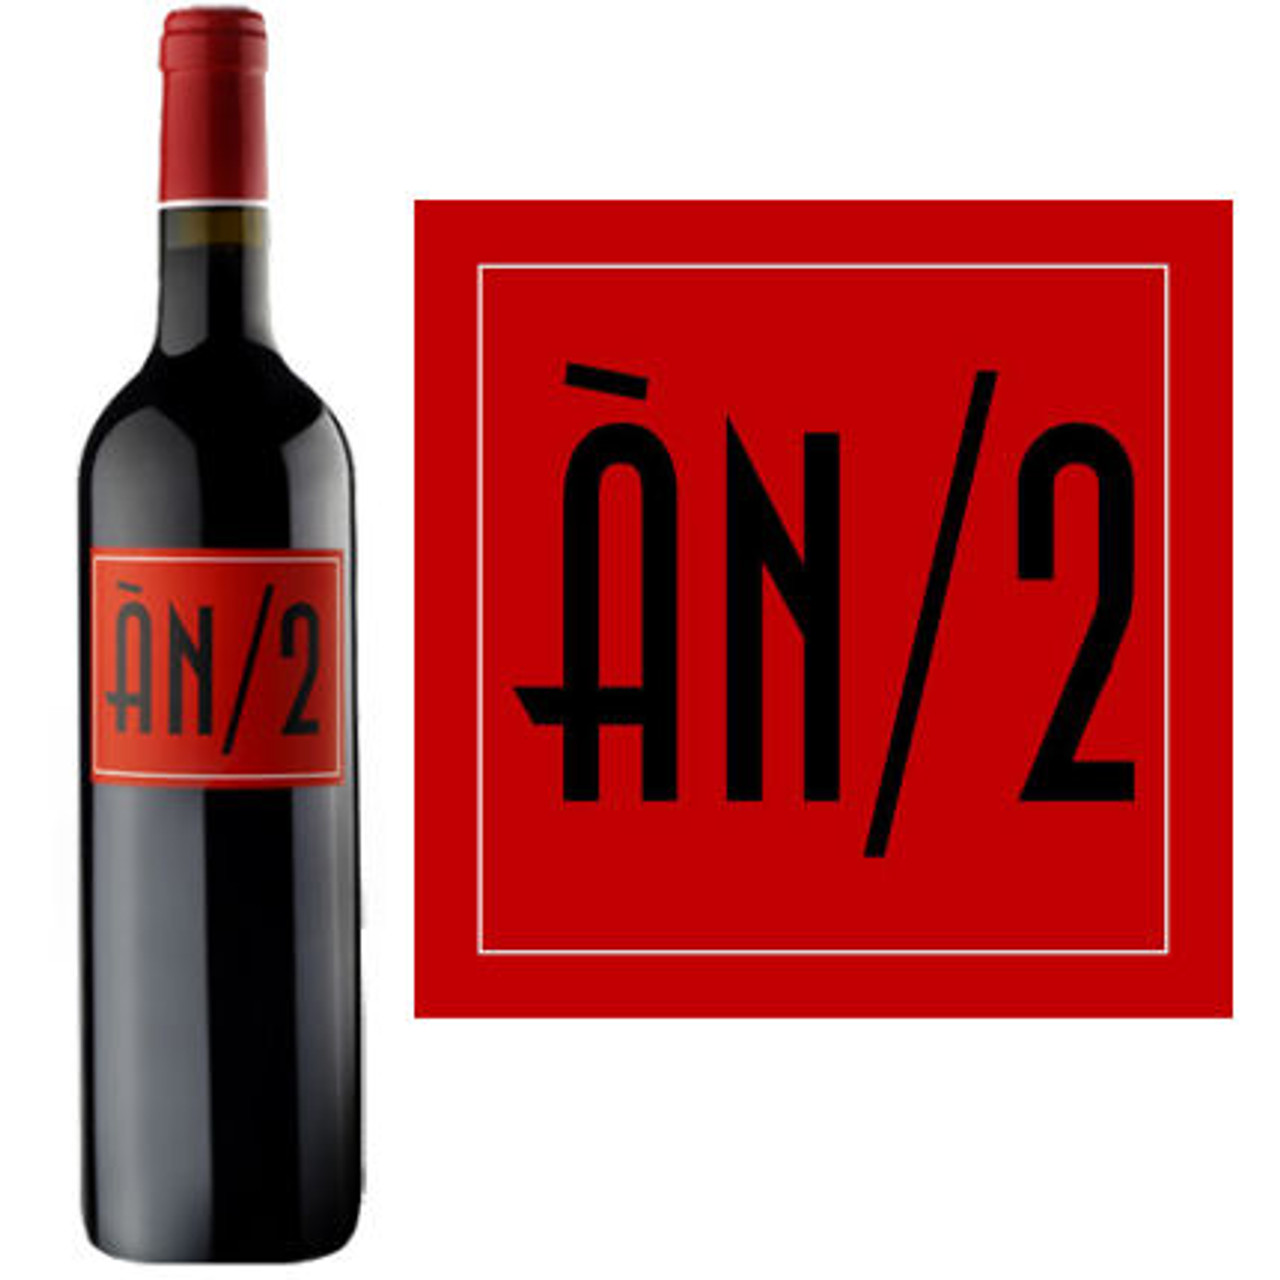 Anima Negra An/2 Mallorca Red